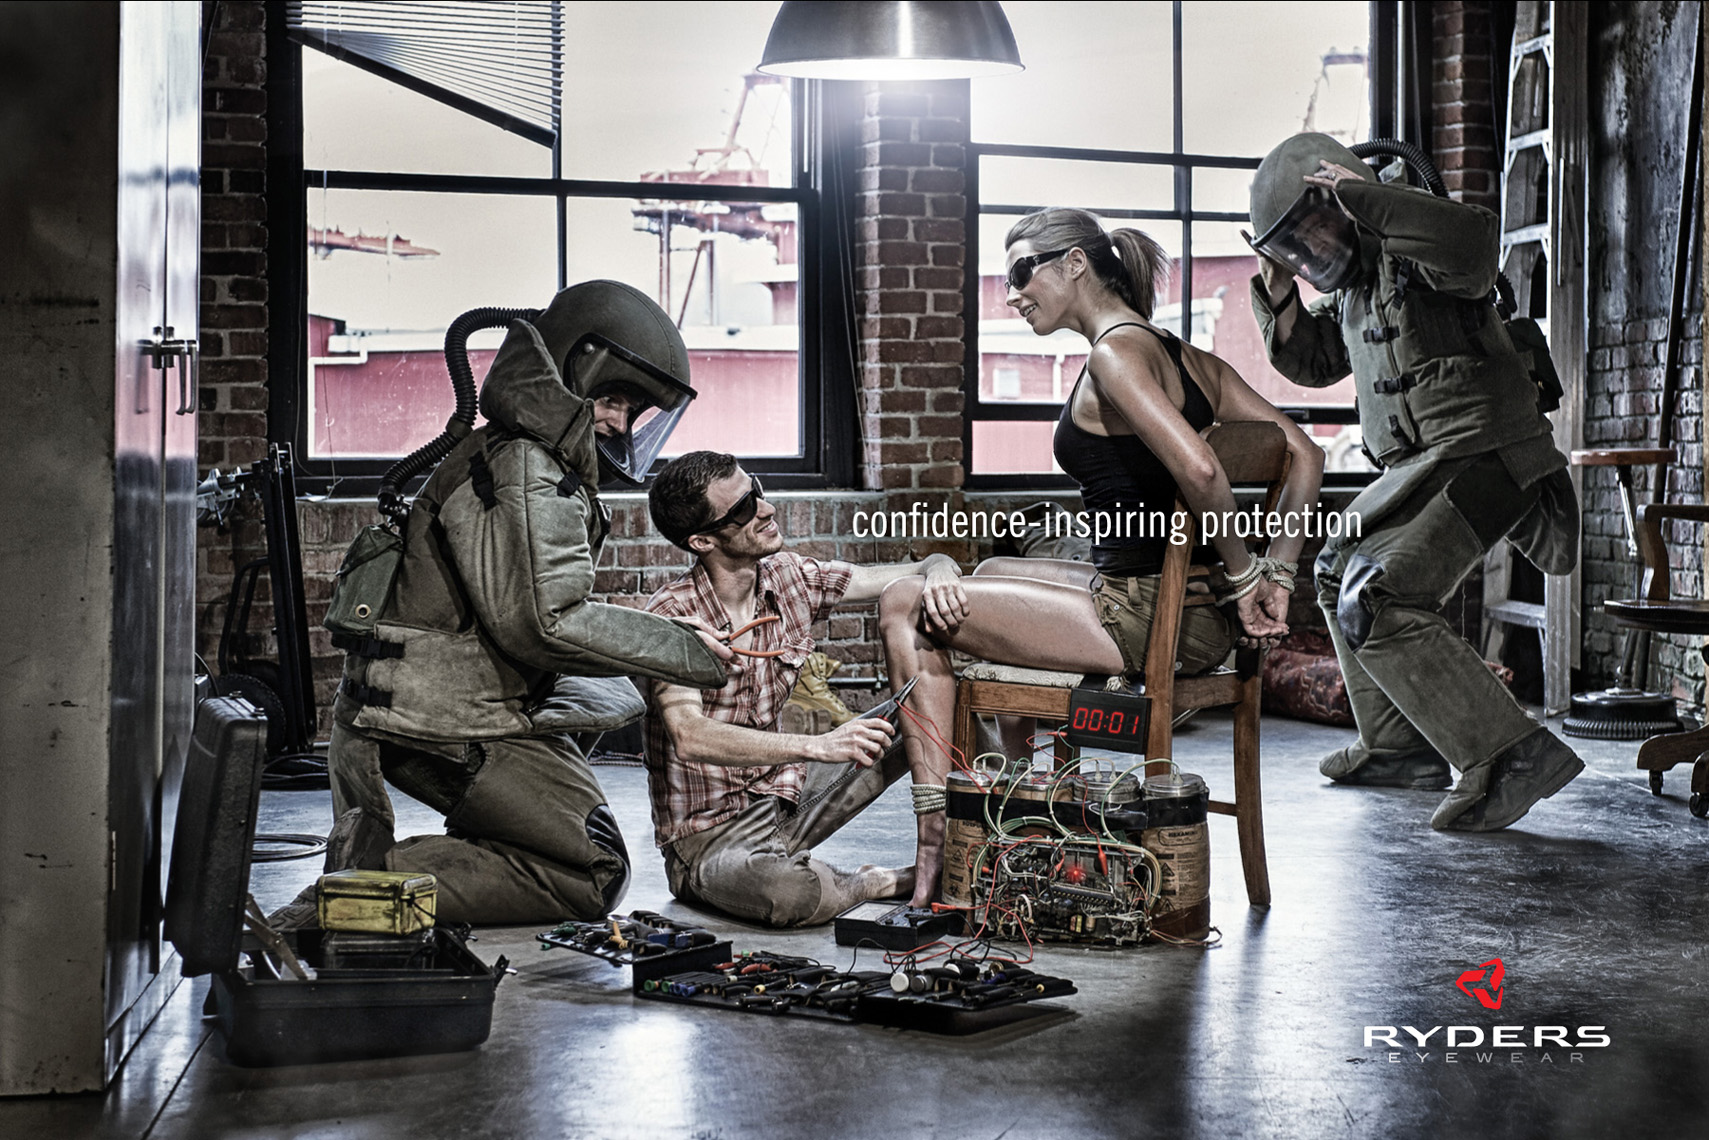 Bomb squad Ryders Eyewear advertising photography by Vancouver advertising photographer Waldy Martens